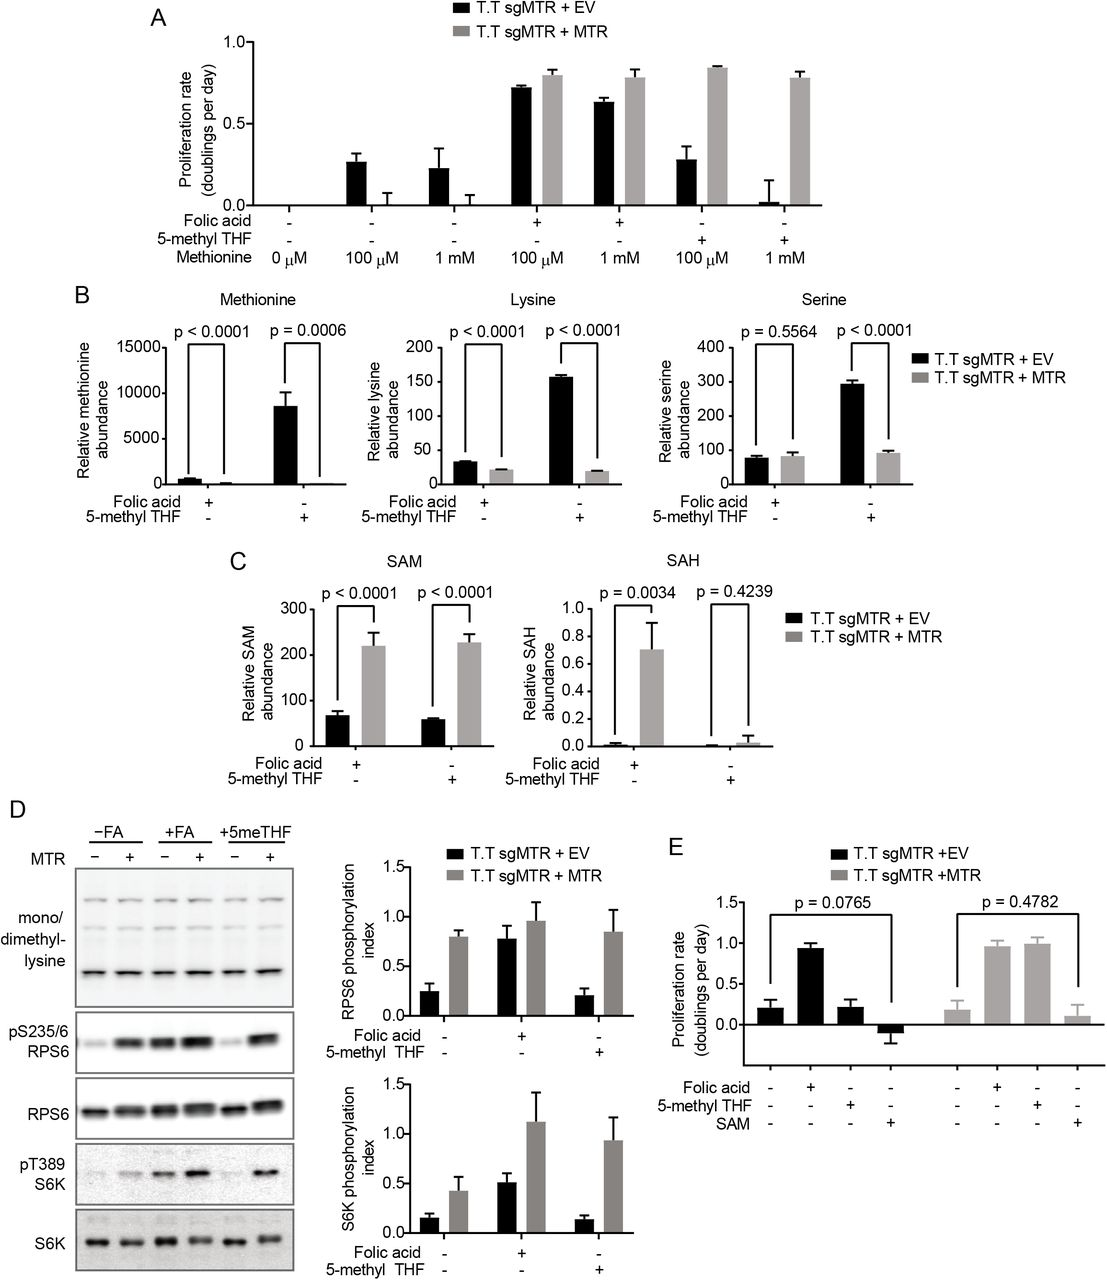 MTR expression affects SAM but not methionine metabolism in T.T cells. (A) Proliferation rates of T.T cells without (+EV) or with MTR expression (+MTR) cultured in the indicated folate with or without the addition of 1 mM methionine to supplement the 100 μM methionine present in RPMI-1640 culture media. (B) LC/MS measurement of intracellular methionine, lysine, and serine levels in T.T cells without (+EV) or with MTR expression (+MTR) cultured for 4 days in the indicated folate. (C) LC/MS measurement of intracellular SAM and SAH levels in T.T cells without (+EV) or with MTR expression (+MTR) cultured for 4 days in the indicated folate. (D) Western blots to assess levels of mono- or dimethyl lysine-containing proteins, RPS6 phosphorylated at S235/6, total RPS6, S6K phosphorylated at T389, and total S6K in T.T cells without (+EV) or with MTR expression (+MTR). Phosphorylation index is defined as the phosphorylated protein antibody signal divided by the same total protein antibody signal in each lane. (E) Proliferation rates of T.T cells without (+EV) or with MTR expression (+MTR) cultured in the indicated folate with or without the addition of 1 mM SAM. Mean +/- SD is displayed for all panels. p values indicated on all panels are derived from two-tailed, unpaired Welch's t tests. For LC/MS measurements, data are normalized to the total protein content of cells in each condition and to an internal standard.